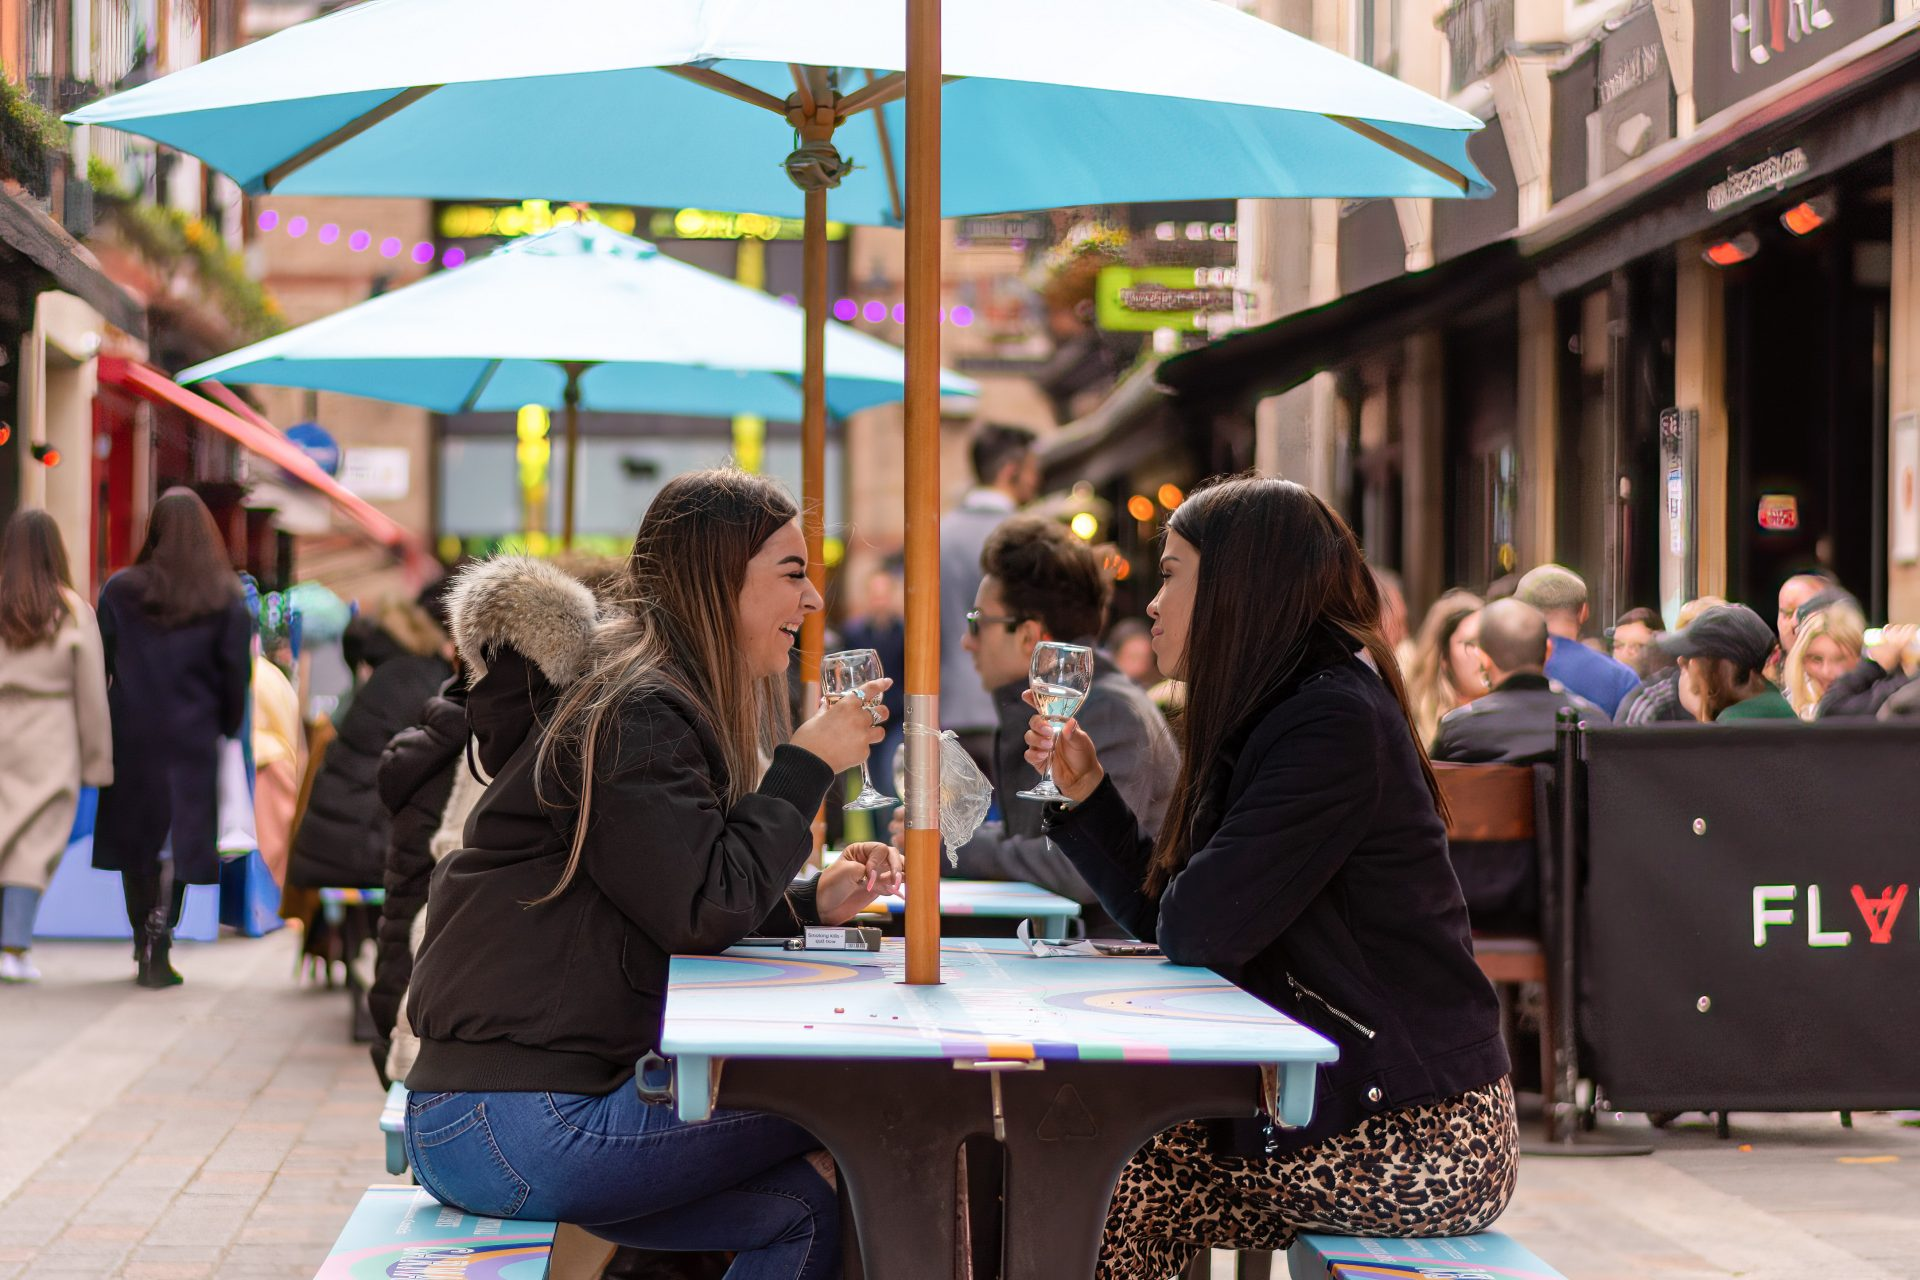 Incredible places to enjoy al fresco dining in London